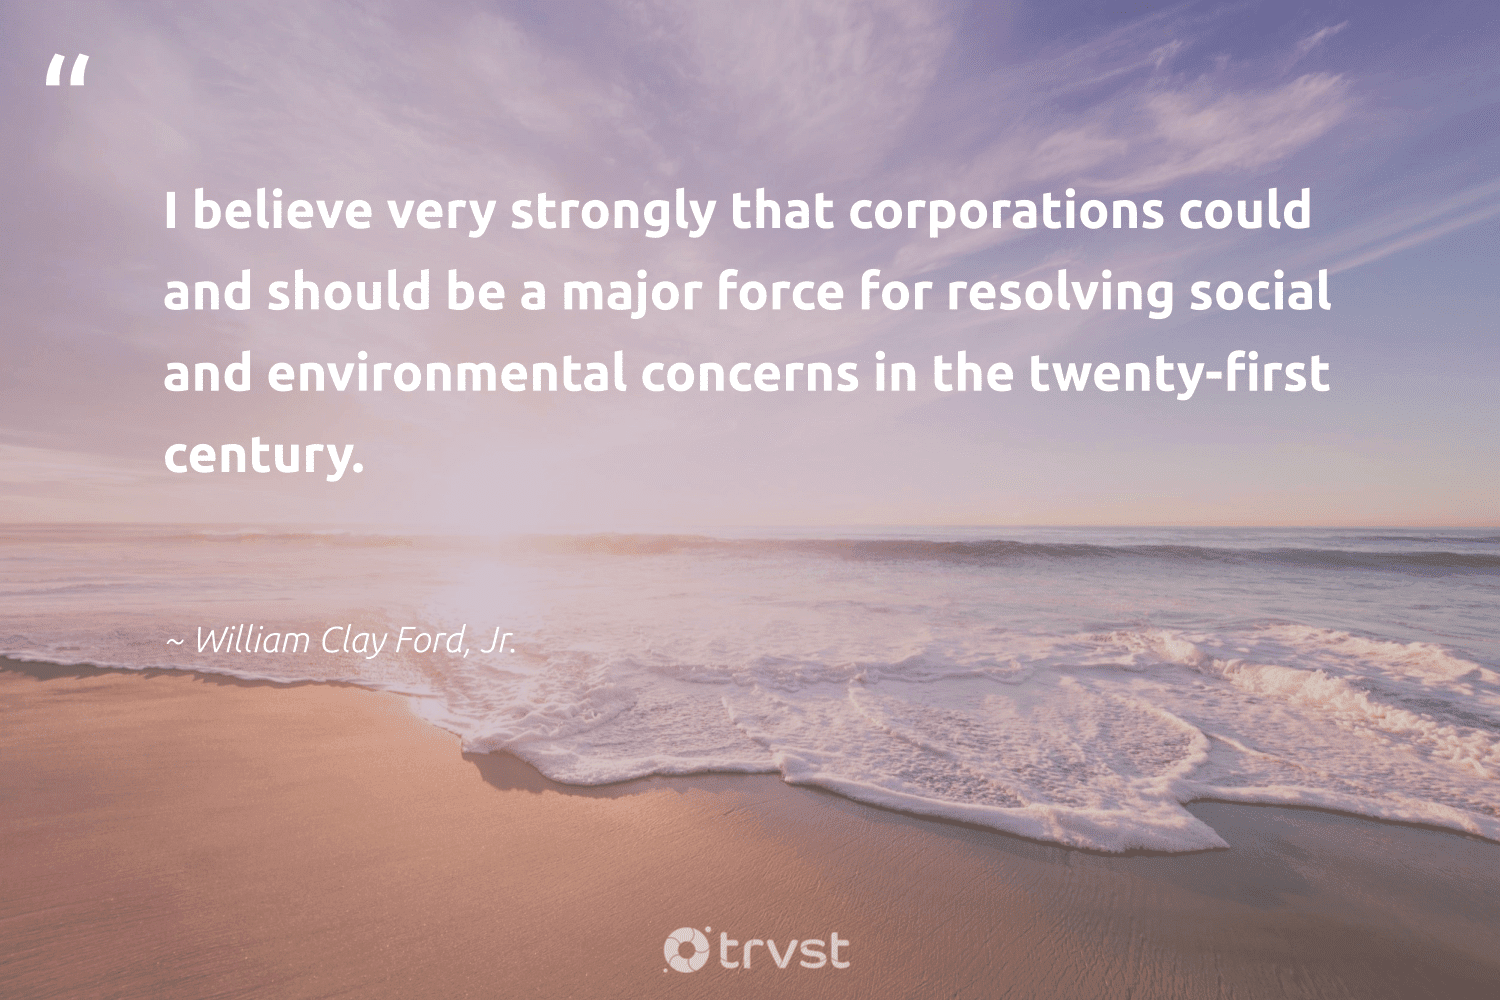 """""""I believe very strongly that corporations could and should be a major force for resolving social and environmental concerns in the twenty-first century.""""  - William Clay Ford, Jr. #trvst #quotes #environmental #ethicalbusiness #dosomething #giveback #beinspired #weareallone #takeaction #sustainable #dotherightthing #betterplanet"""